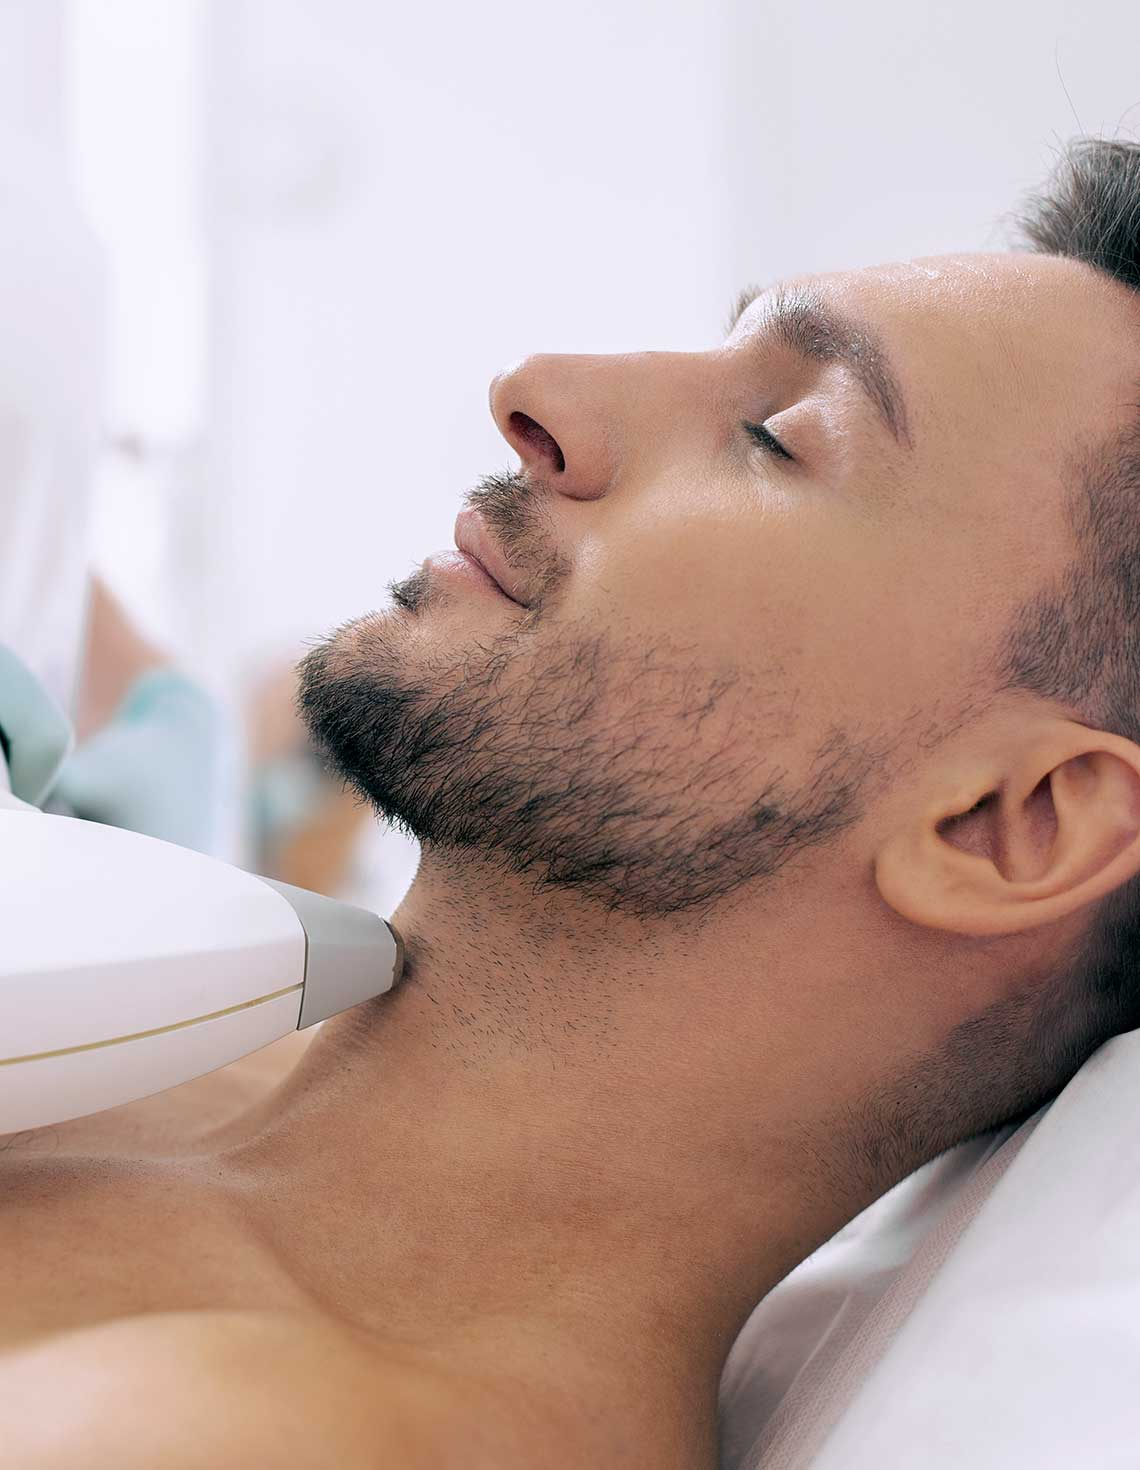 Man with a stylish beard having laser hair removal on his neck